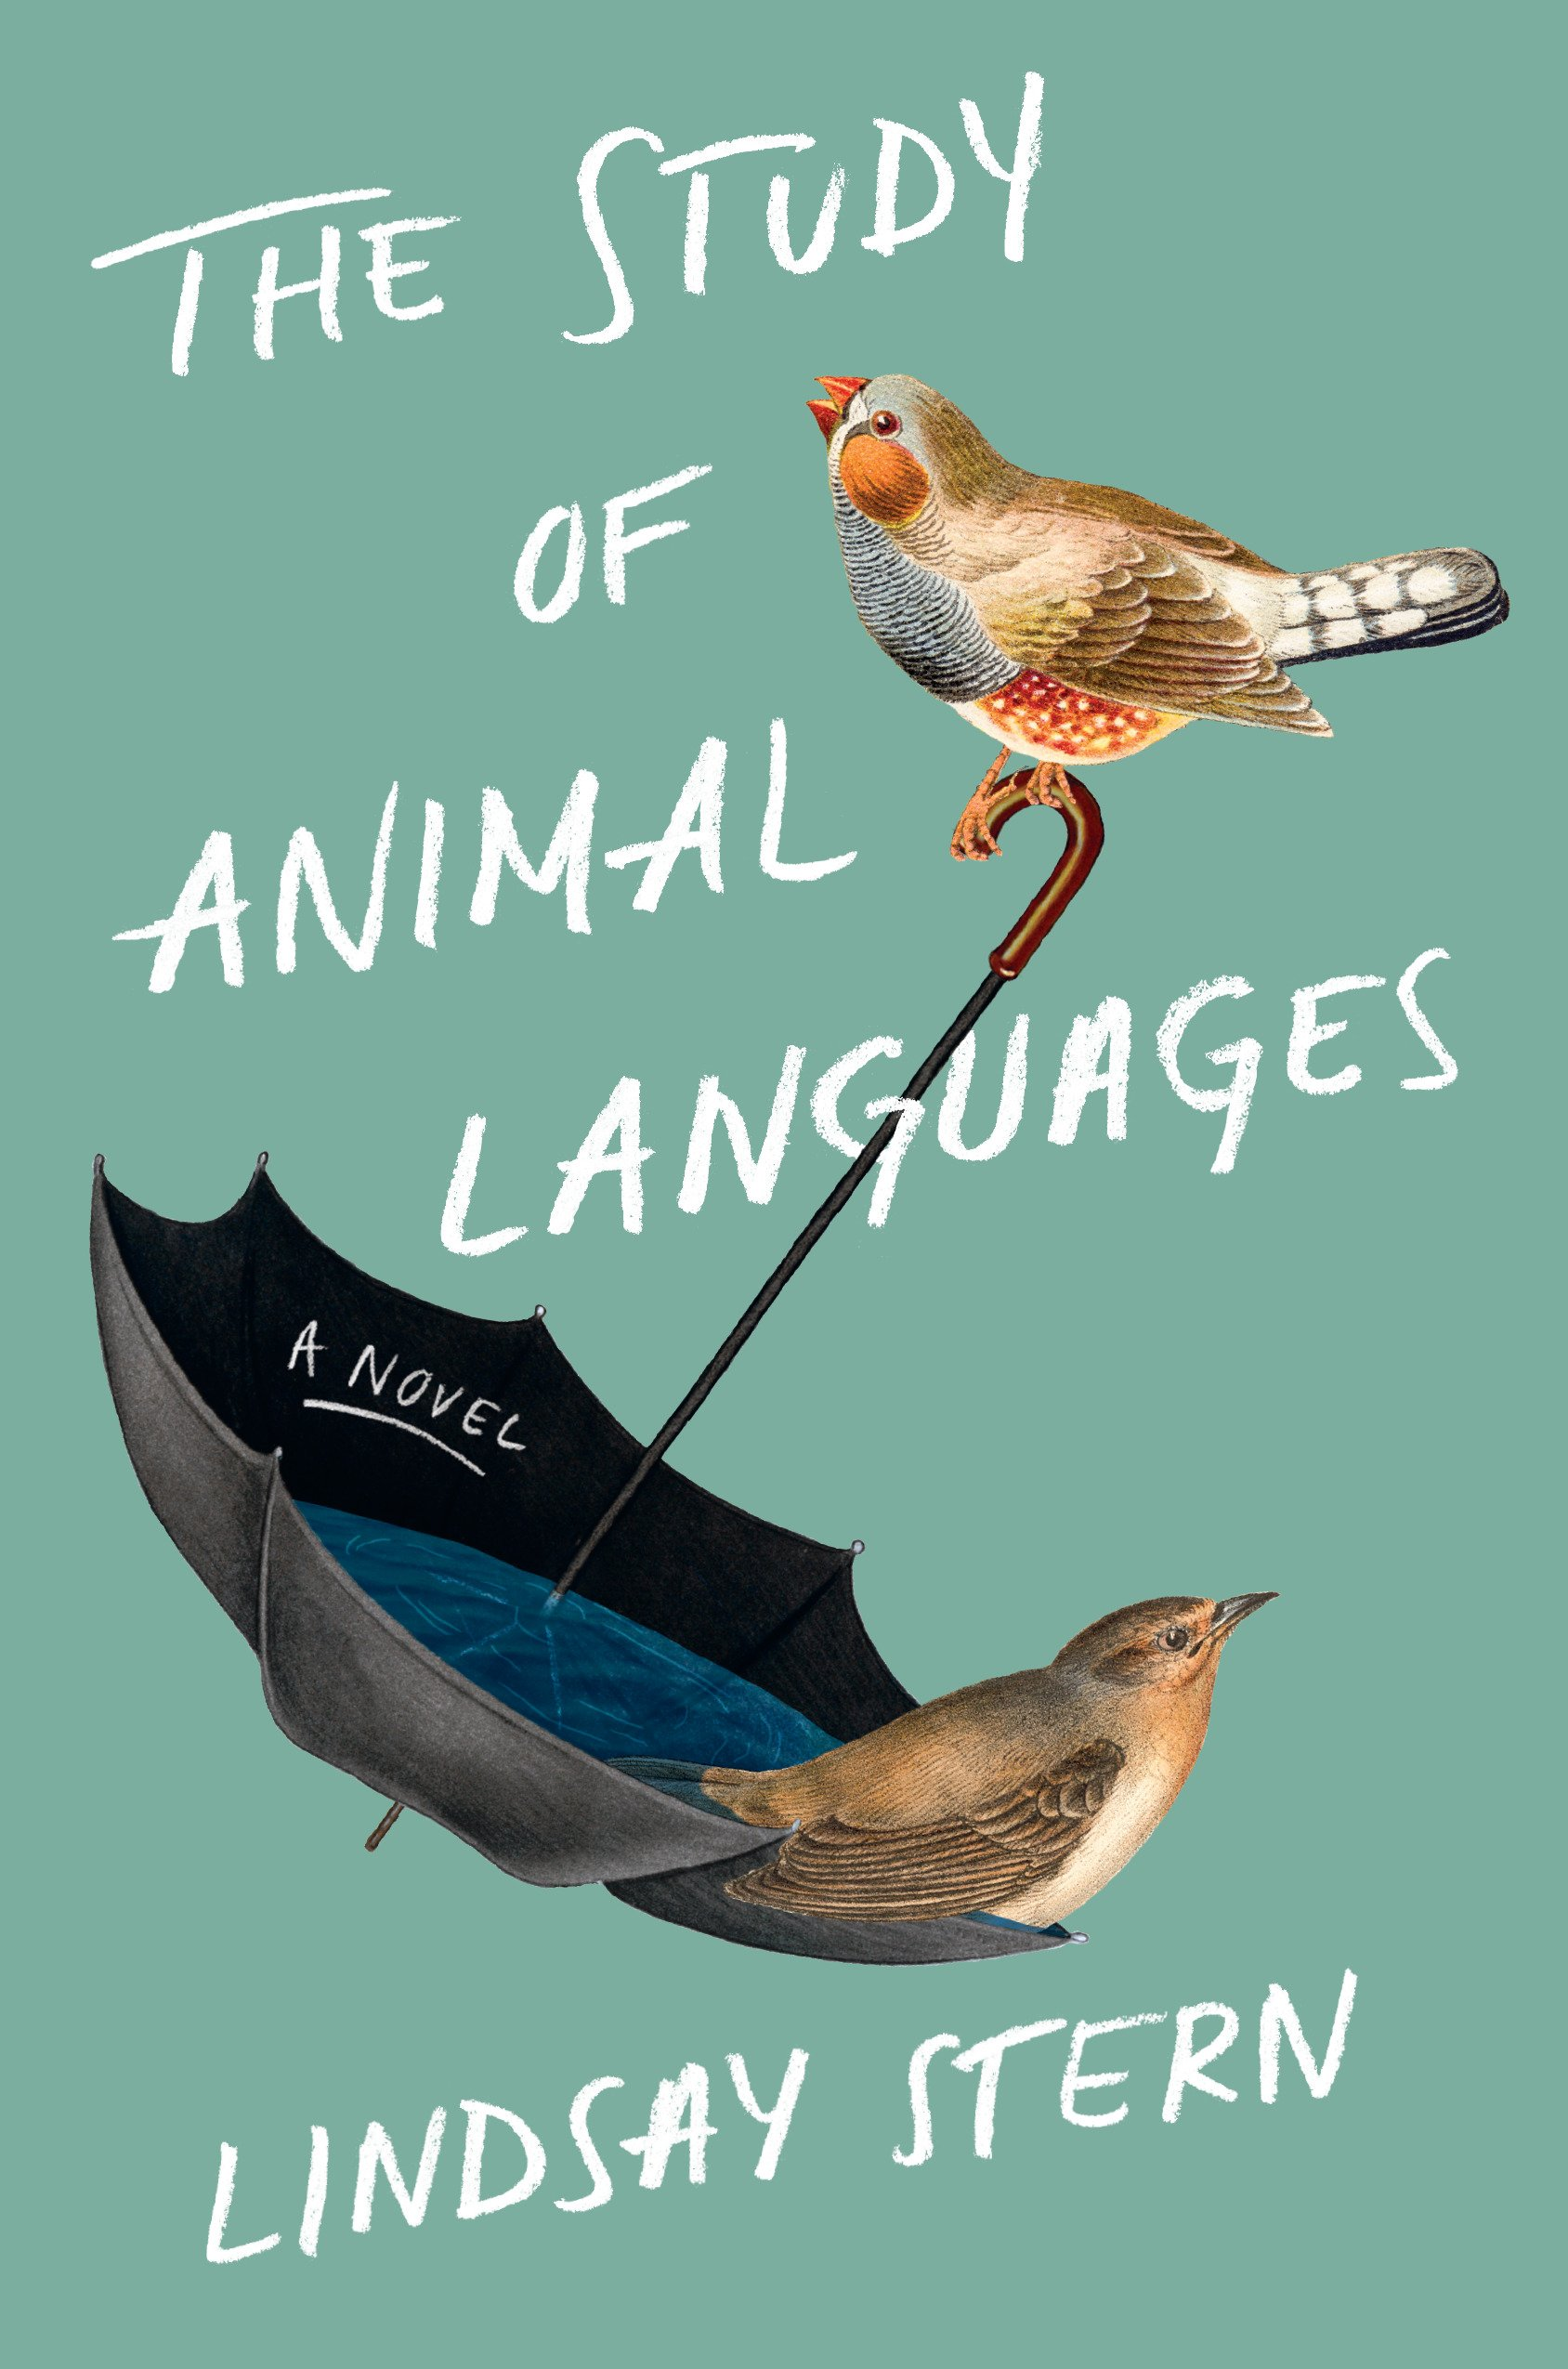 The Study of Animal Languages: A Novel by Viking